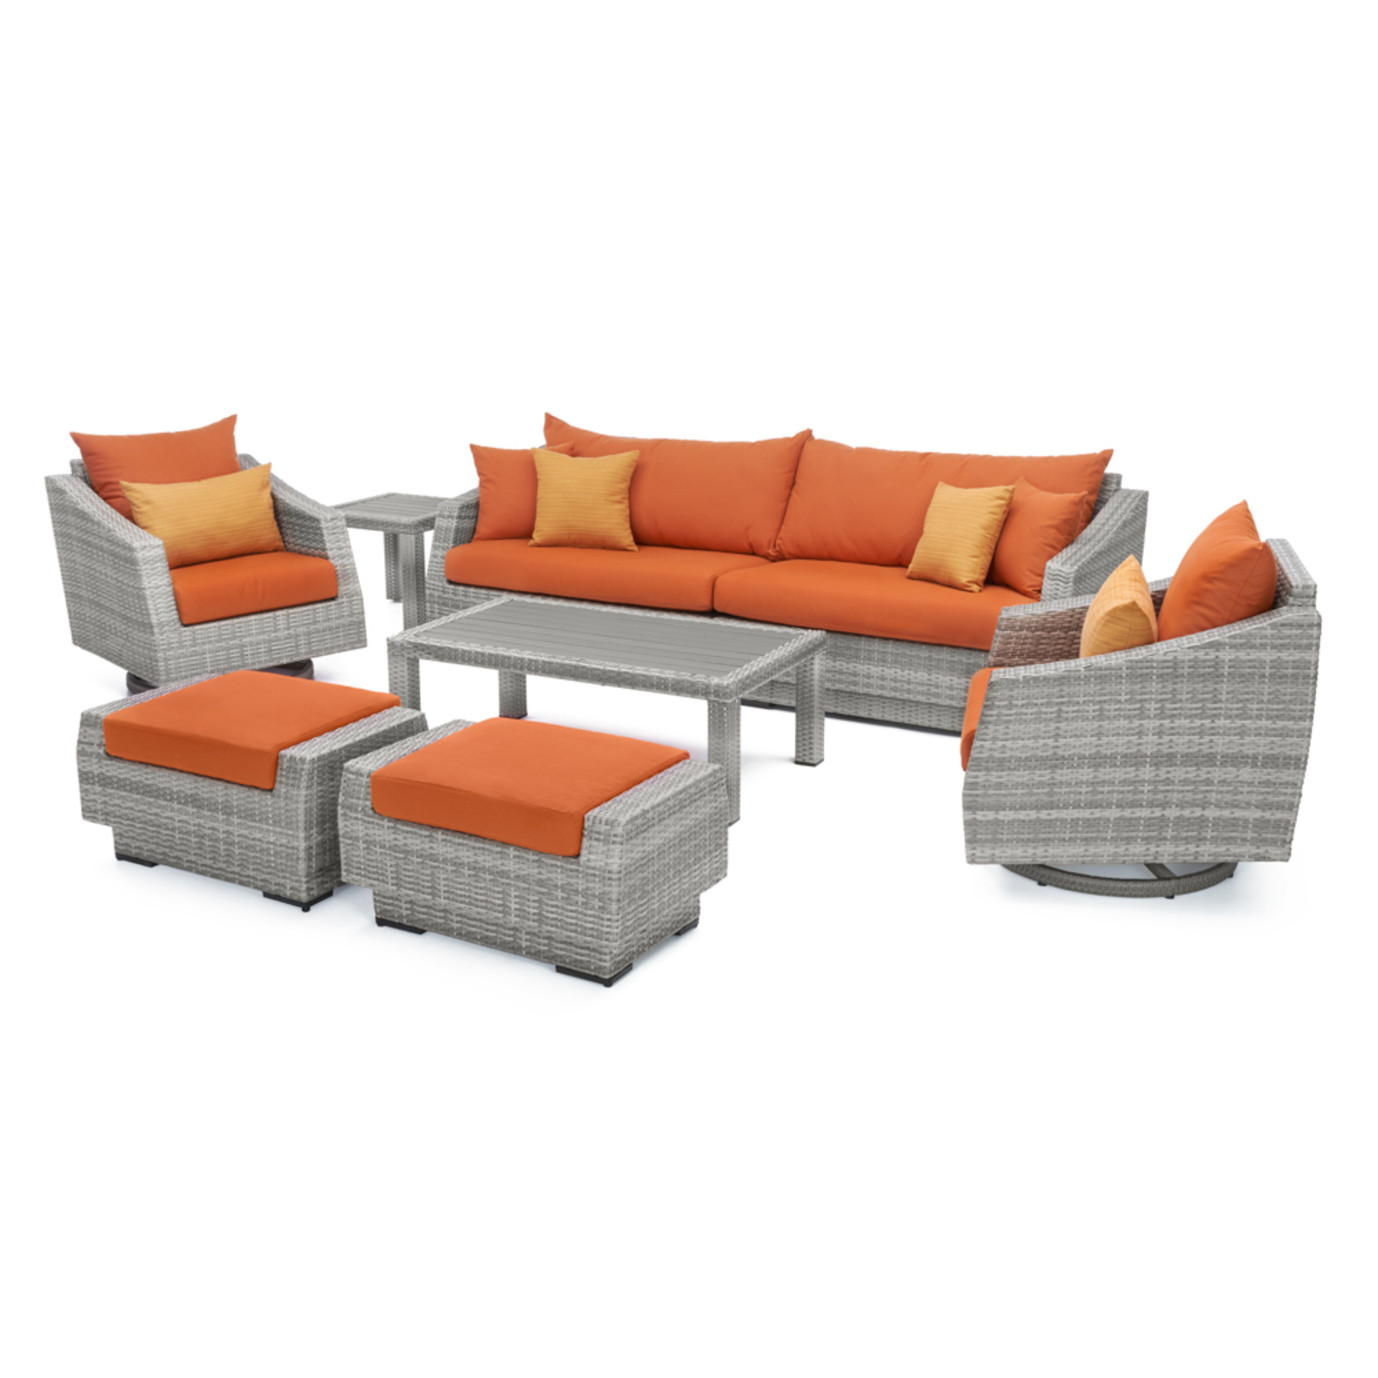 Cannes™ Deluxe 8 Piece Sofa & Club Chair Set - Tikka Orange